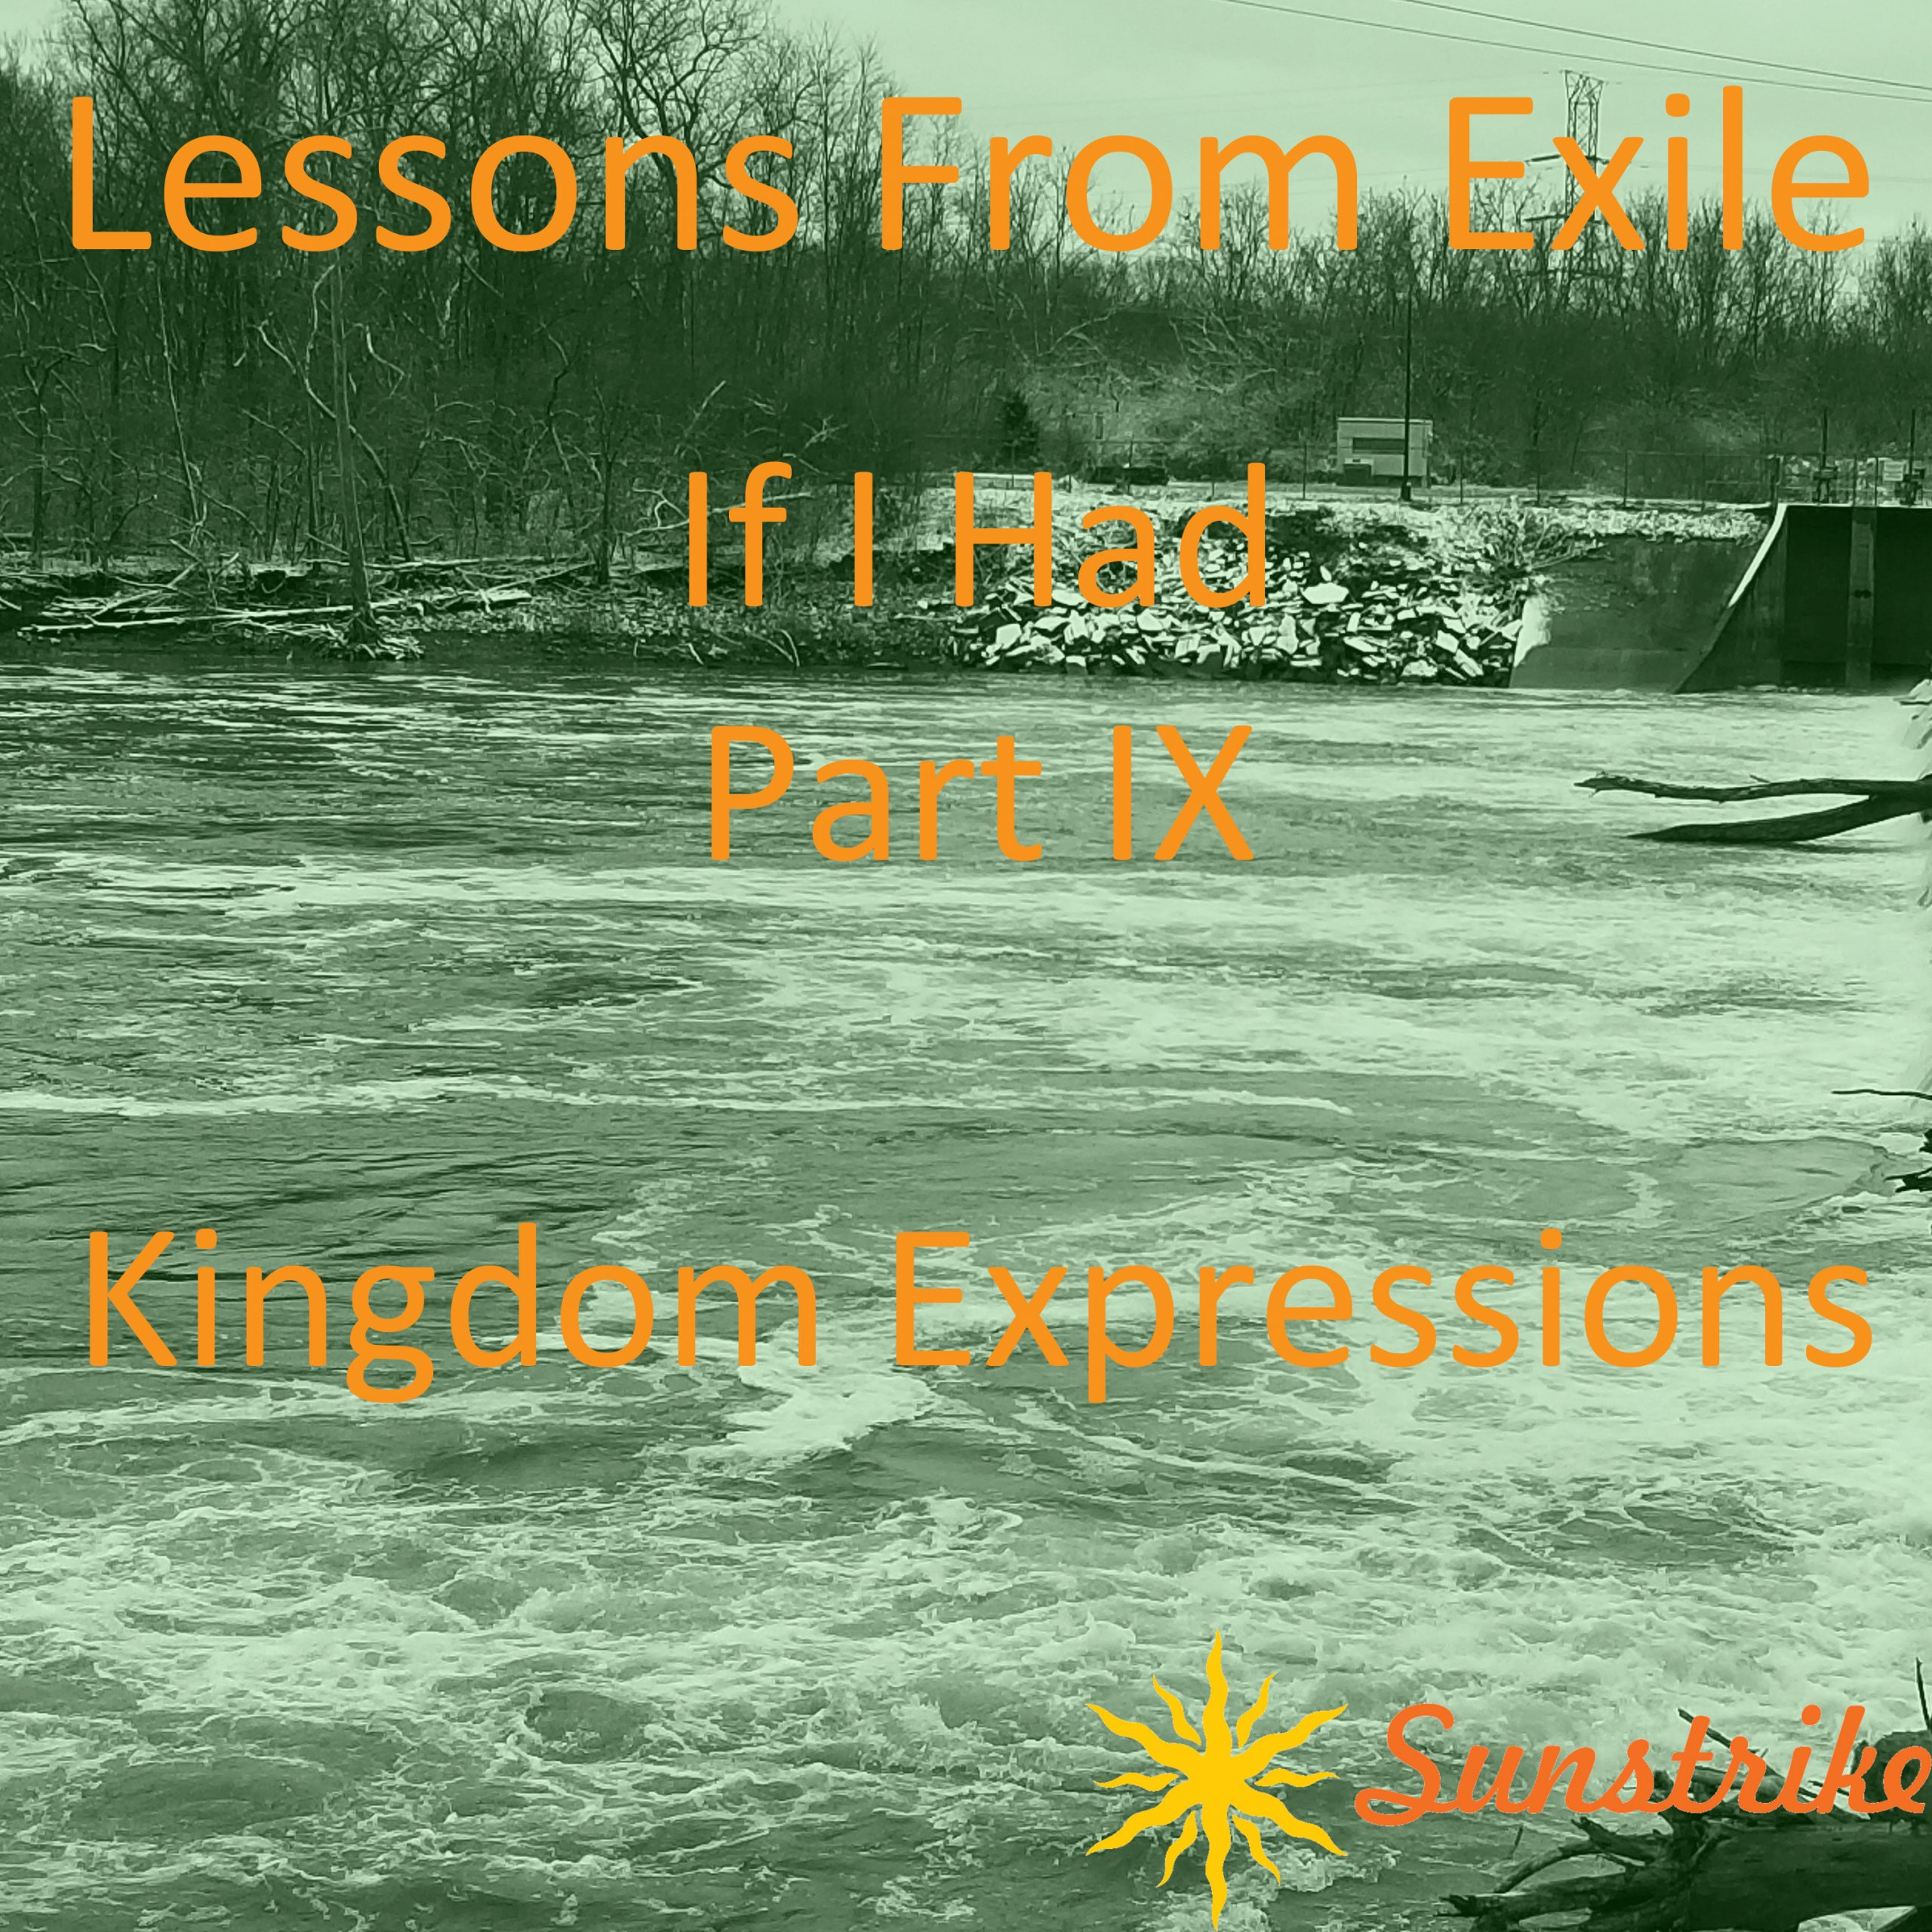 Lessons from Exile #111: If I Had – Part IX – Kingdom Expressions